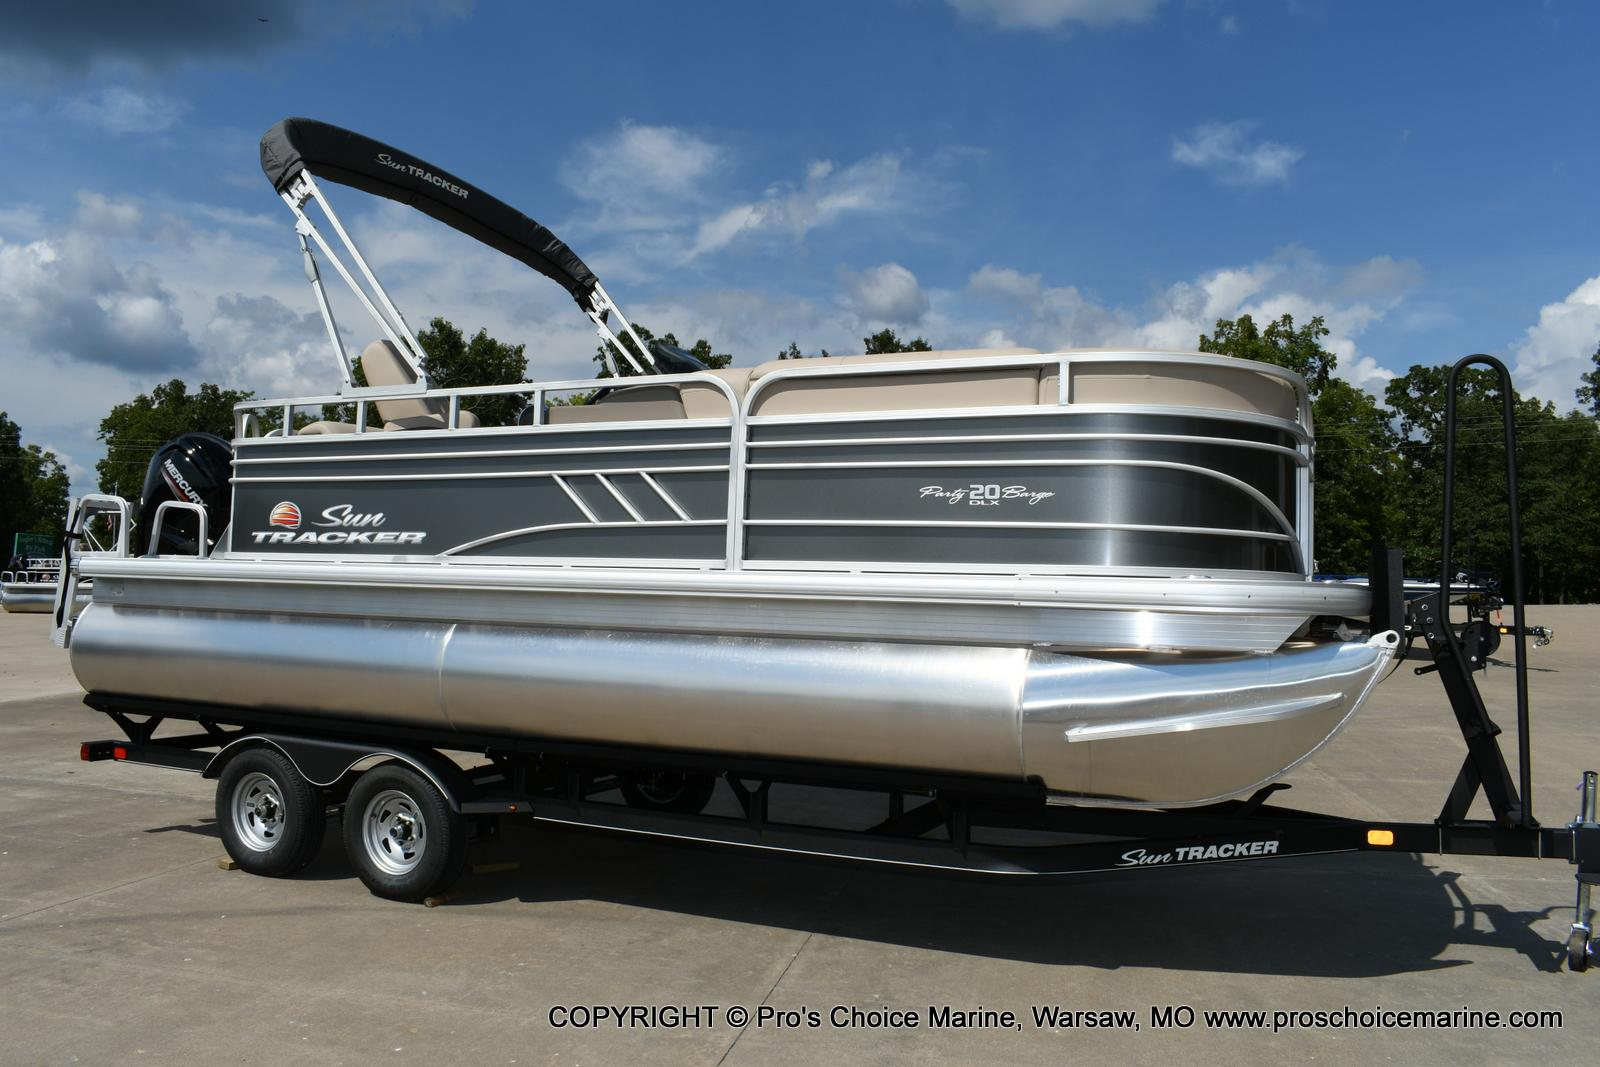 2020 Sun Tracker boat for sale, model of the boat is Party Barge 20 DLX & Image # 2 of 50